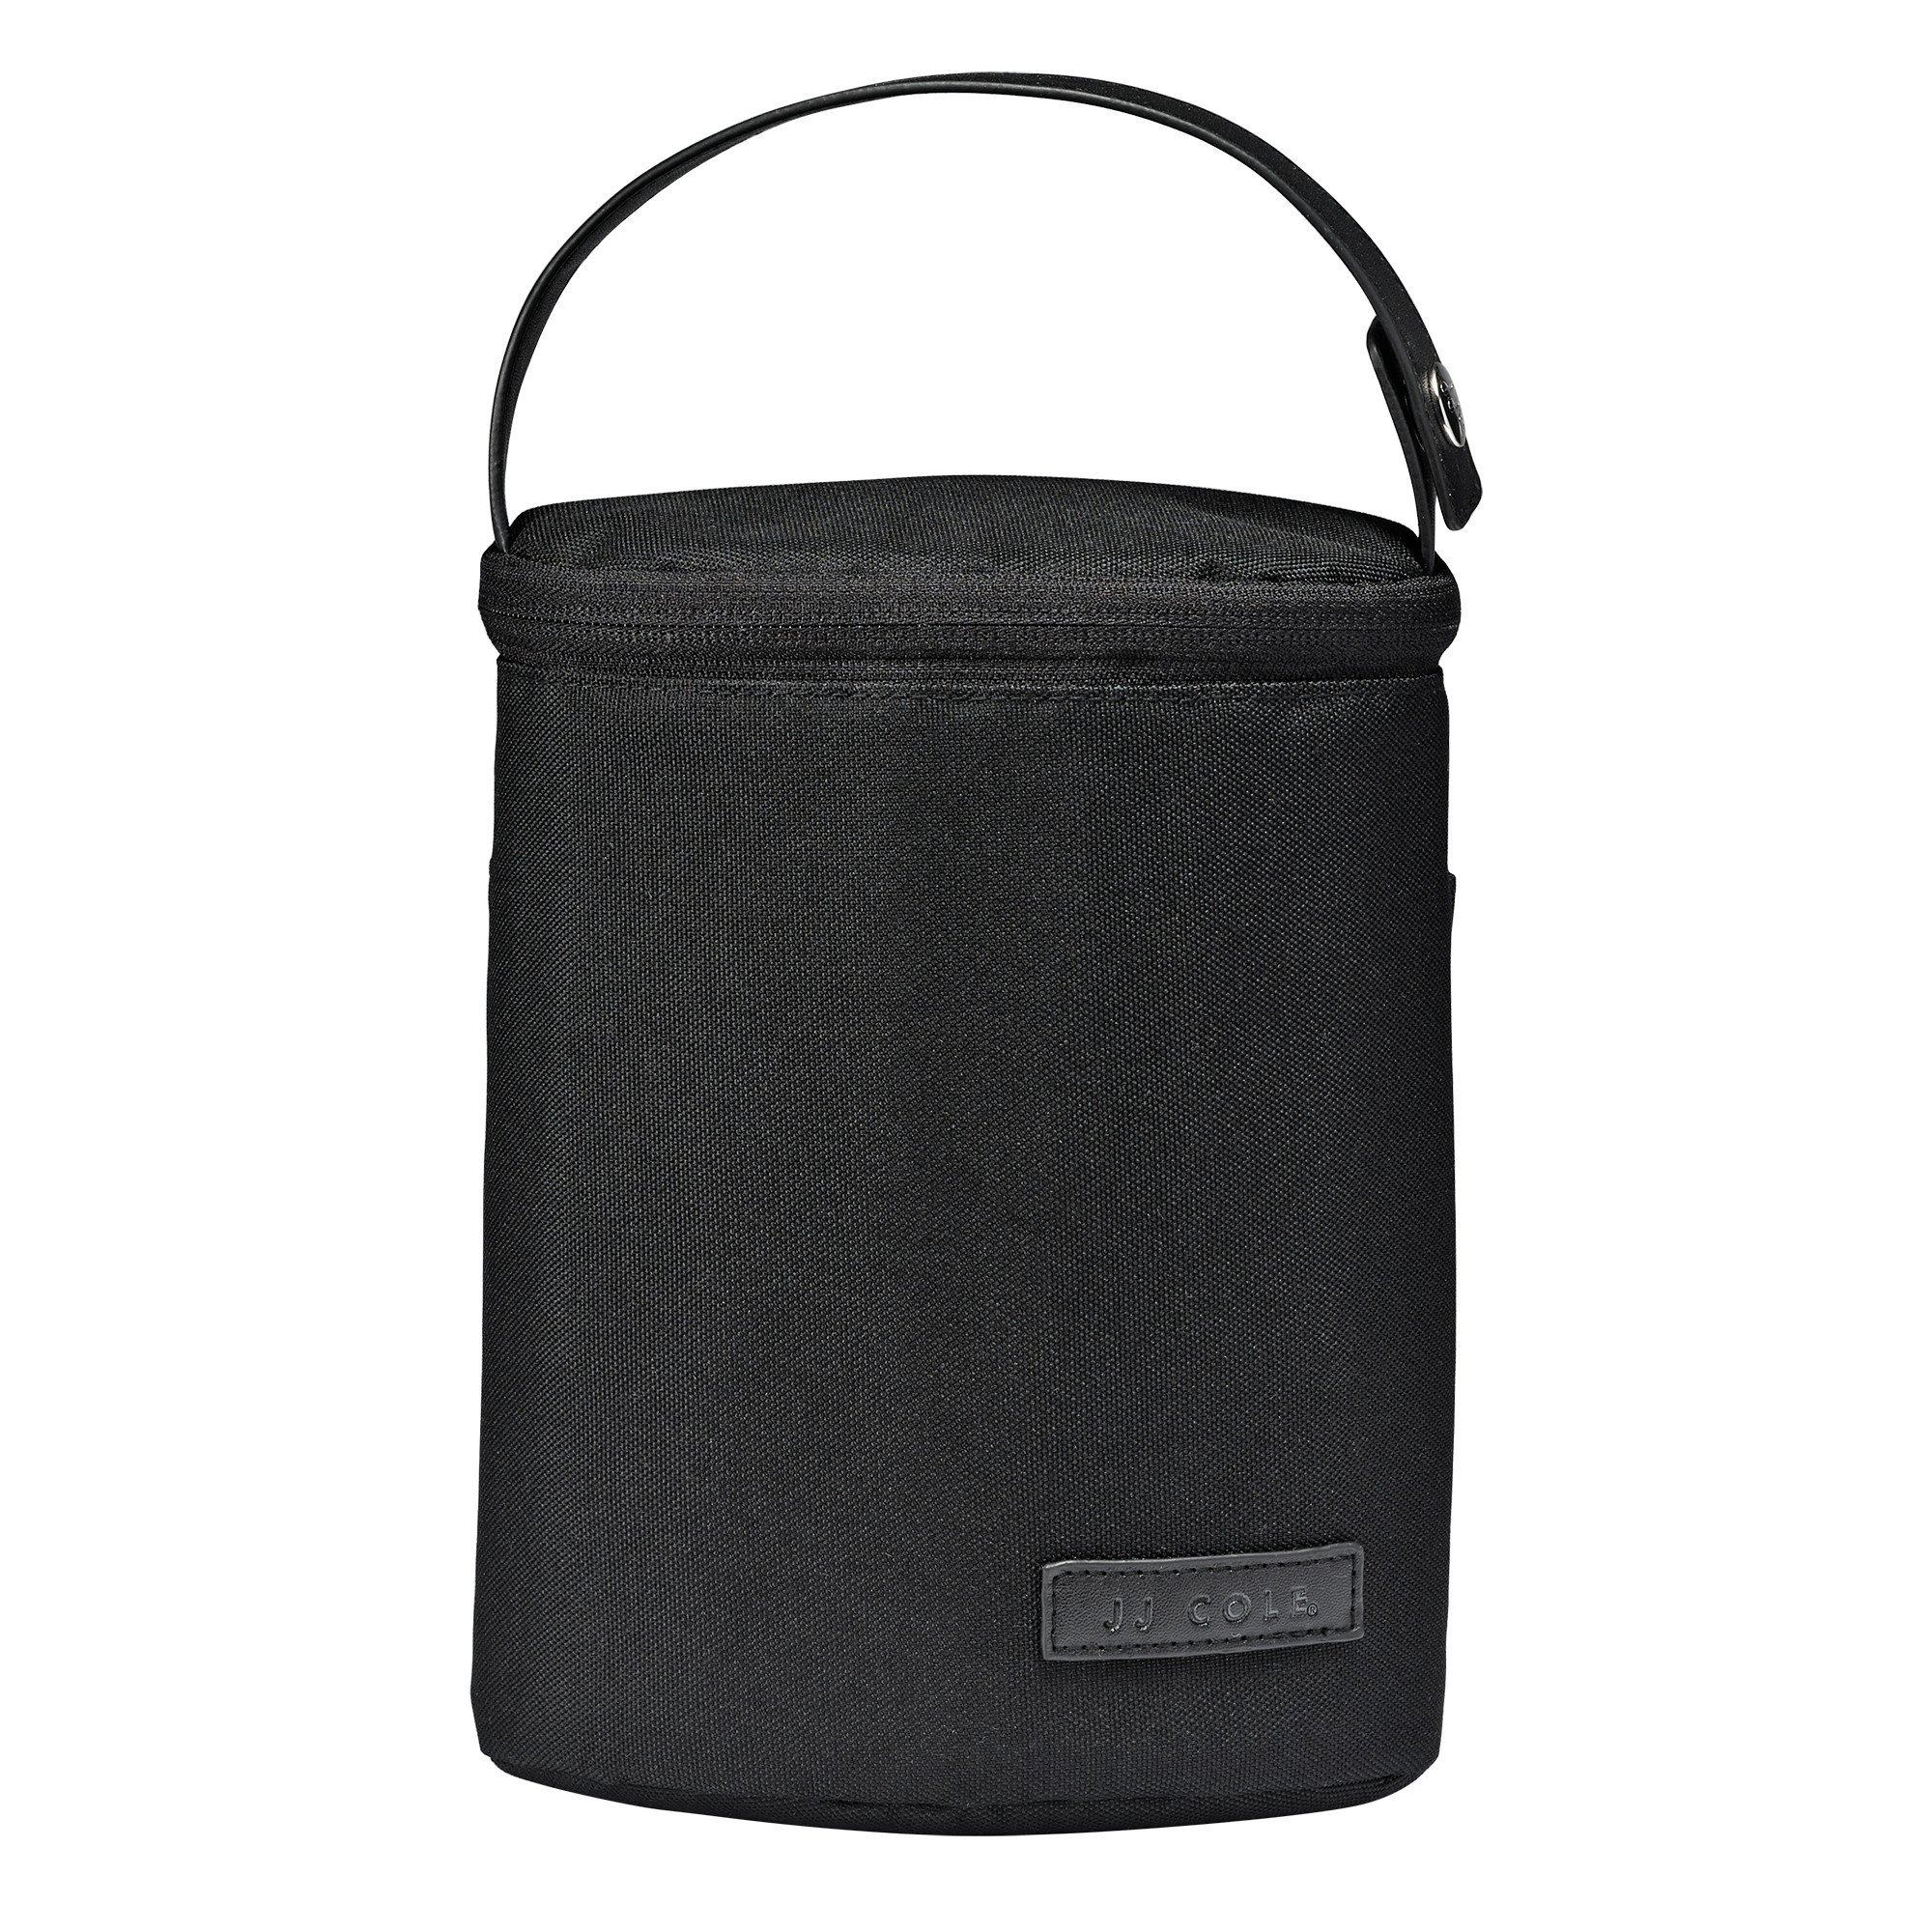 JJ Cole - Bottle Cooler, Insulated Interior for 2 Large Bottles or Sippy Cups, Included Freezer Pack, Exterior Pocket, Easy Attach Handle, Blackout by JJ Cole